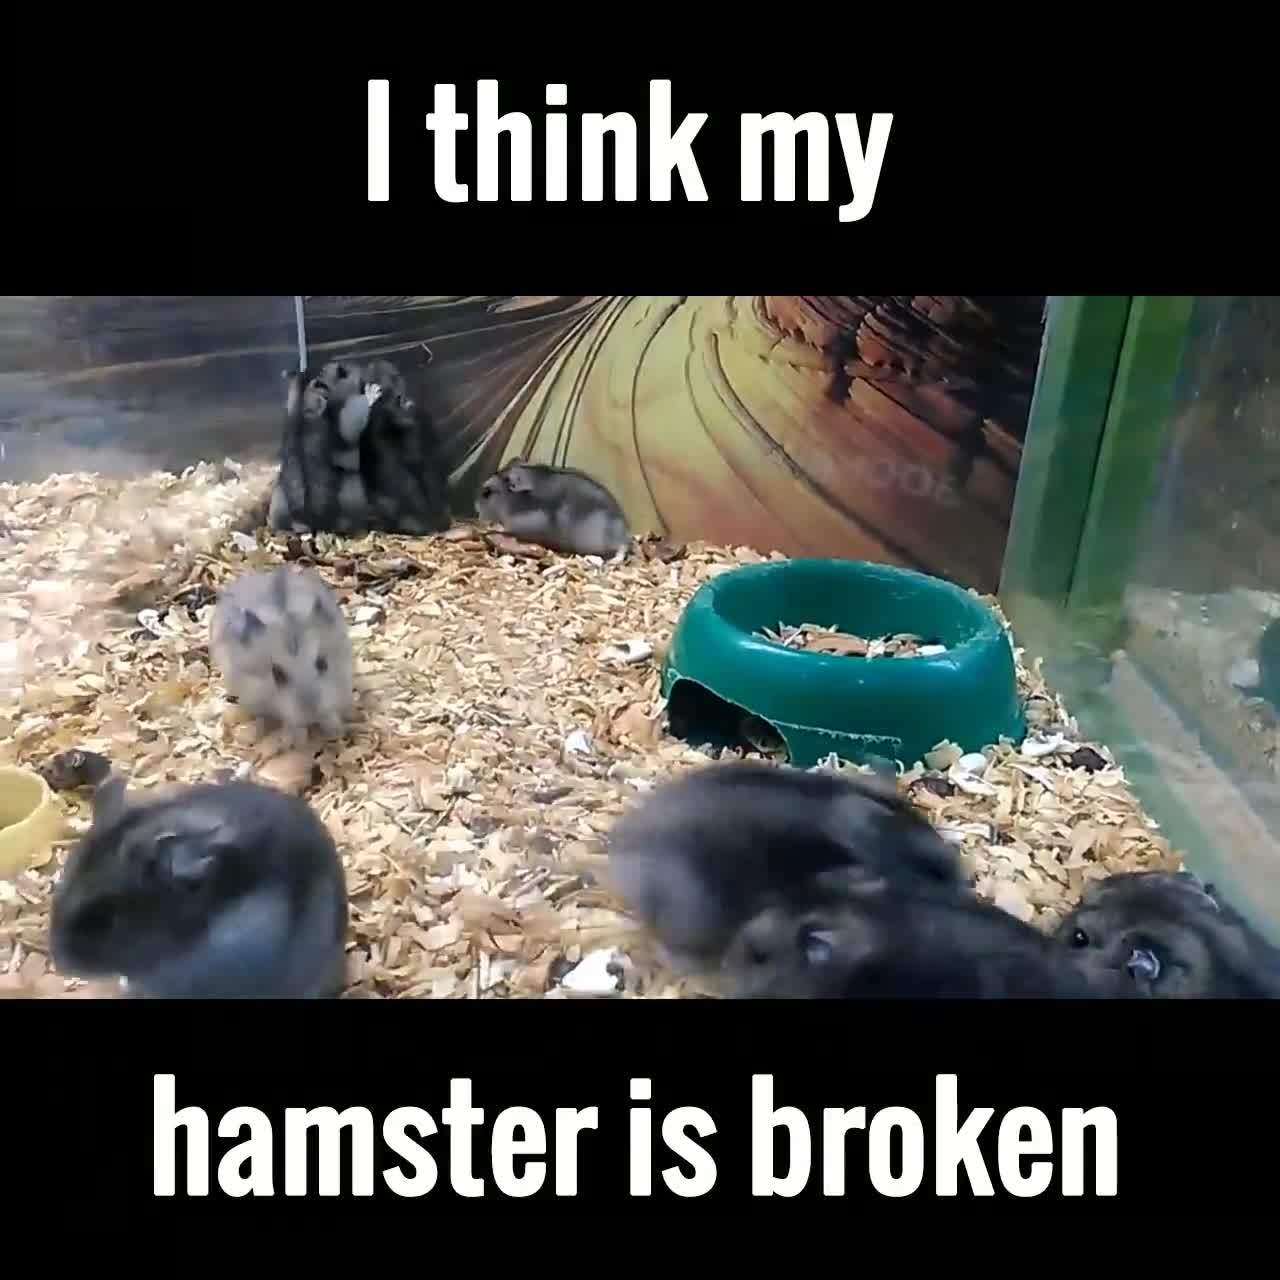 StoppedWorking, stoppedworking, I think my hamster is broken GIFs